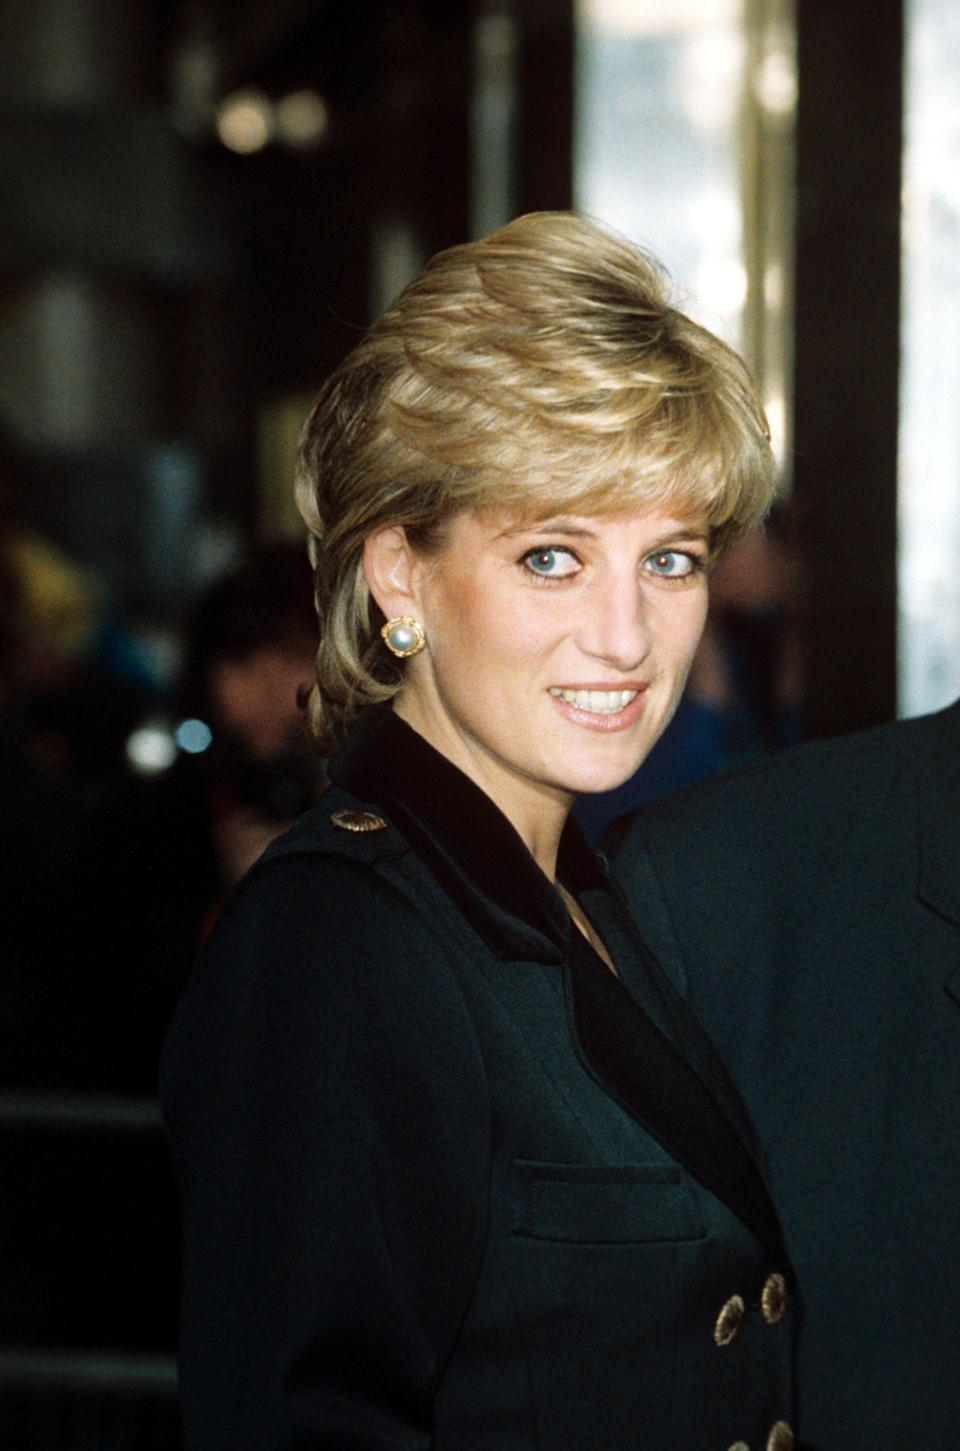 """<p class=""""body-dropcap"""">When remembering Princess Diana, one's mind immediately flashes to the iconic photographs that helped shape the legacy she left behind. The man responsible for many of those photographs is Tim Rooke, royal photographer for Rex by Shutterstock. As we commemorate what would be the Princess of Wales's 60th birthday, Rooke speaks with <em>Town & Country</em> to share his favorite photographs and fondest memories of the late Princess Diana. </p><p>As a royal photographer, Tim Rooke, is tasked with capturing intimate moments of the royal family during public events. And since the 1990s, he has watched the monarchy grow and change from behind his lens. When Prince William and Kate Middleton exited their wedding at Westminster Abbey in 2011, Rooke was there to capture it. Similarly, Rooke was stationed outside St. Mary's Hospital<a href=""""https://www.townandcountrymag.com/society/tradition/g10044961/prince-george-photos-news/"""" rel=""""nofollow noopener"""" target=""""_blank"""" data-ylk=""""slk:when Prince George was born in 2013"""" class=""""link rapid-noclick-resp""""> when Prince George was born in 2013</a> and stood in <a href=""""https://www.townandcountrymag.com/society/tradition/a36887822/kensington-palace-sunken-garden-redesign-photos/"""" rel=""""nofollow noopener"""" target=""""_blank"""" data-ylk=""""slk:Kensington Palace's Sunken Garden"""" class=""""link rapid-noclick-resp"""">Kensington Palace's Sunken Garden</a> when Prince Harry and Meghan Markle announced their engagement in 2017. </p><p>But when Tim Rooke entered the royal world in the 1990s, it was Princess Diana who was the beloved jewel of the British monarchy. Here, Tim Rooke shares his photographs with<em> T&C</em> and reveals what it was truly like to capture the People's Princess.</p>"""